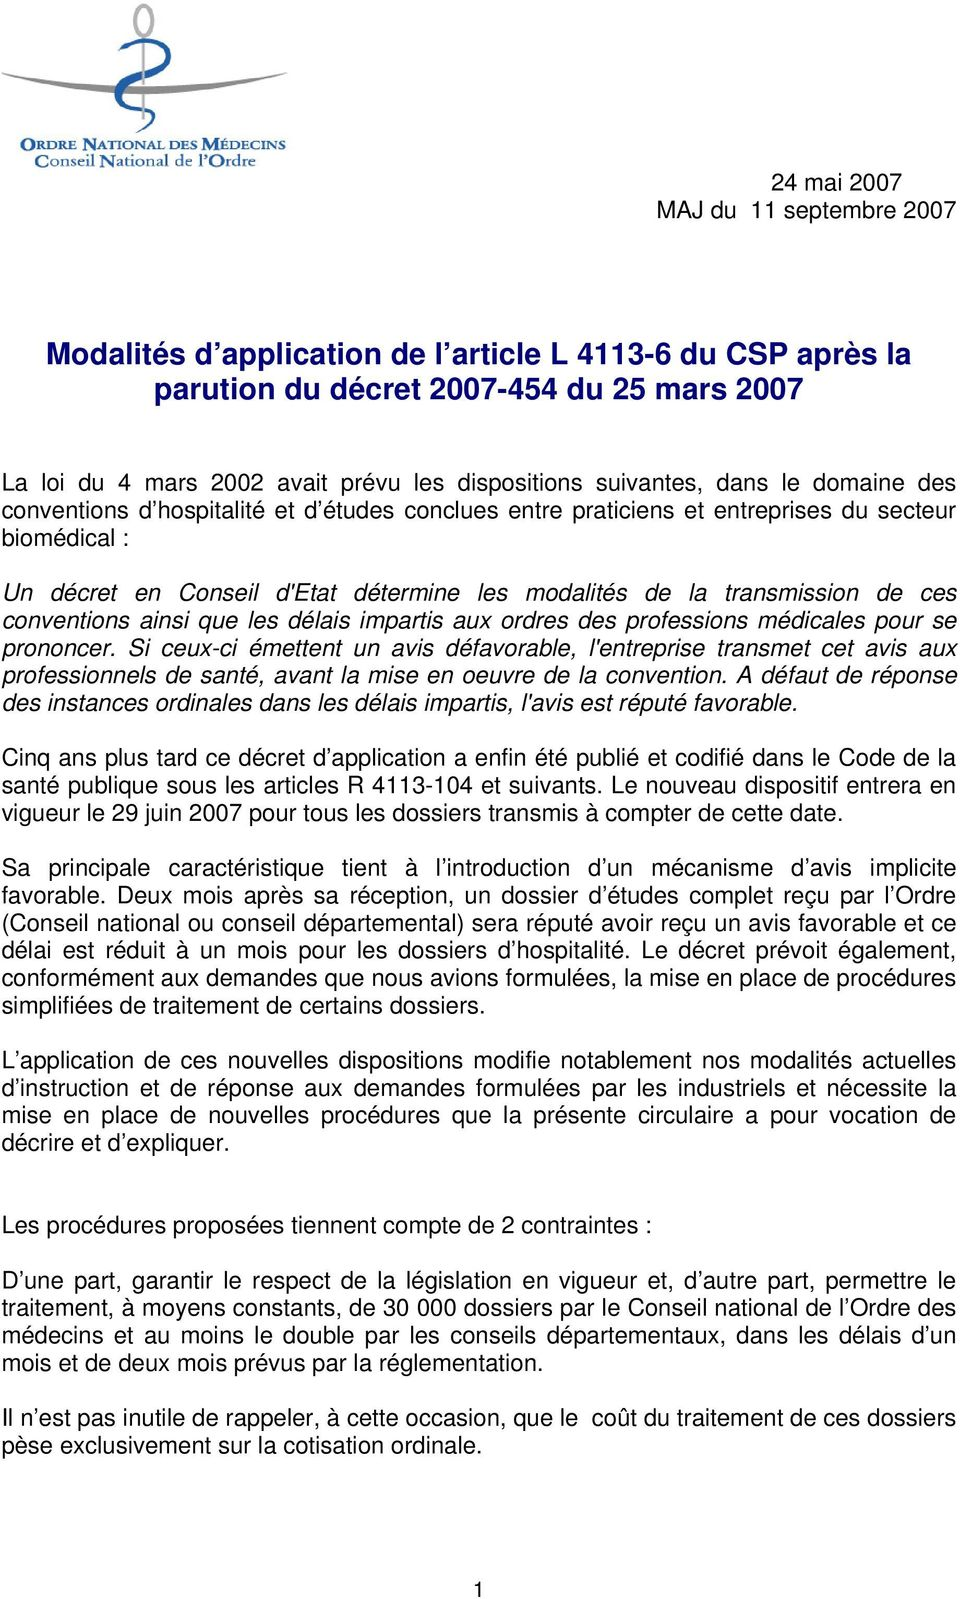 modalit s d application de l article l du csp apr s la parution du d cret du 25 mars pdf. Black Bedroom Furniture Sets. Home Design Ideas